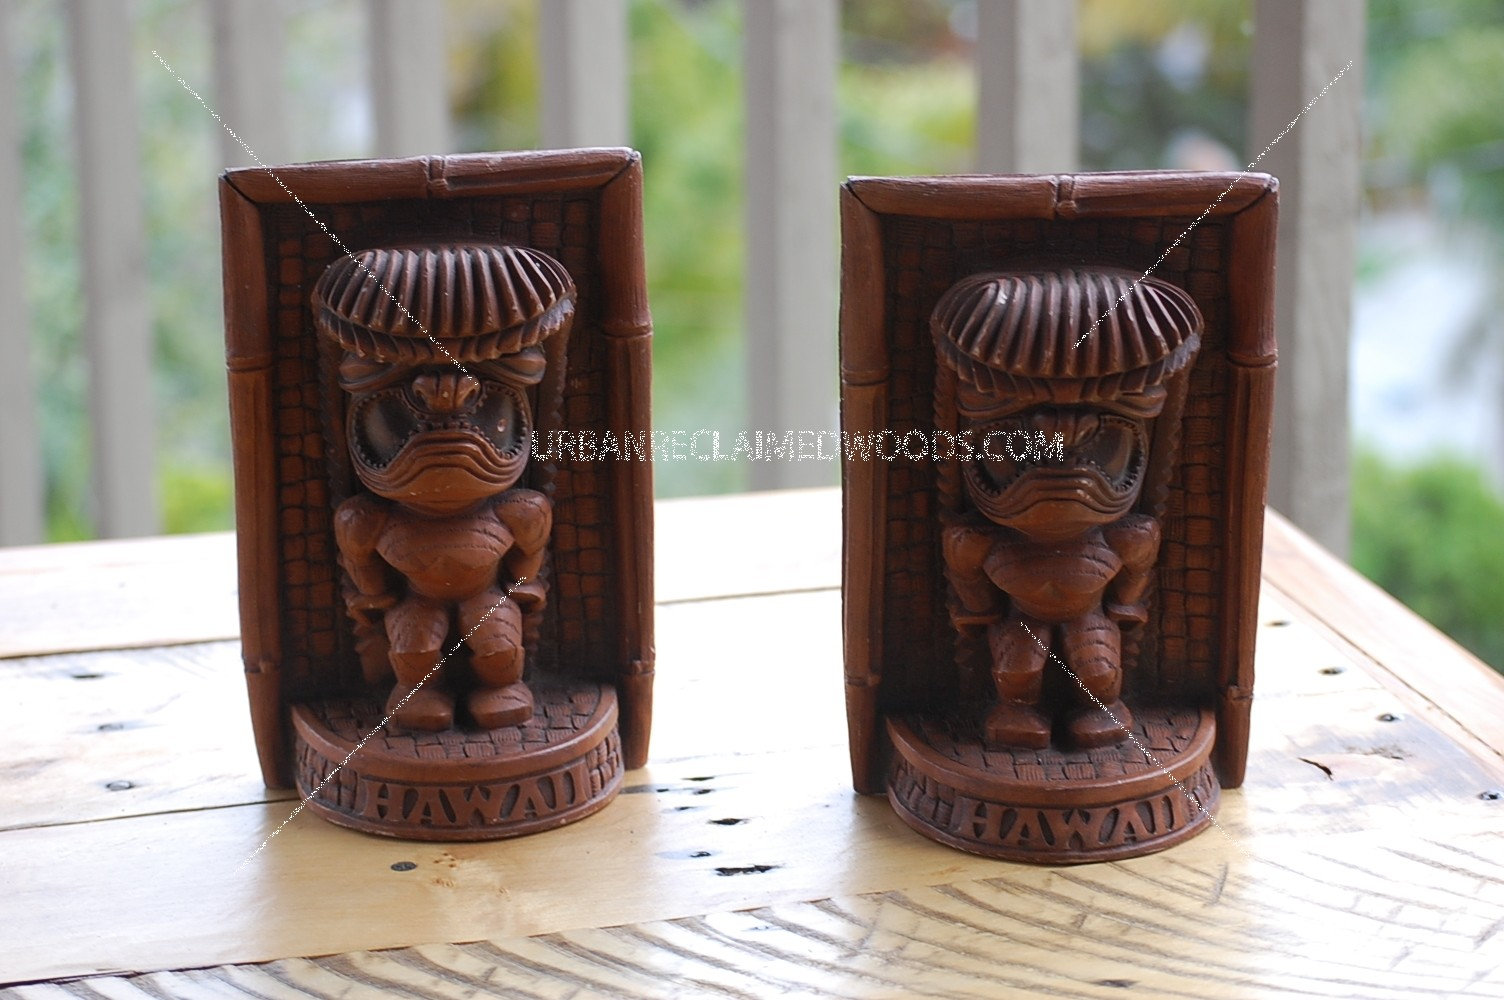 Pair of Hawaiian Bookend Tiki's - Vintage -Ku tiki God